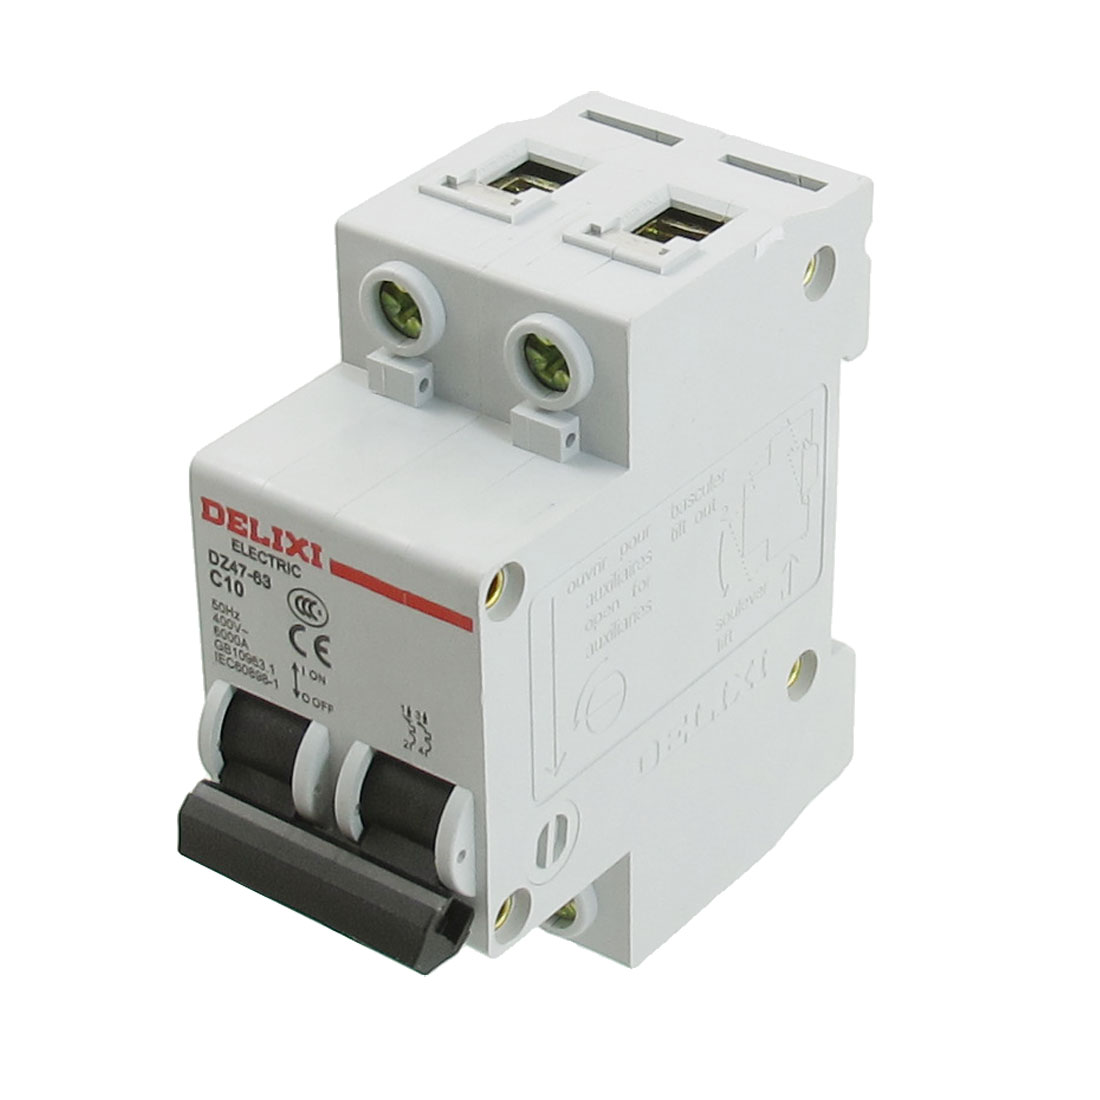 AC 400V Rated Current 10A Double Pole Miniature Circuit Breaker